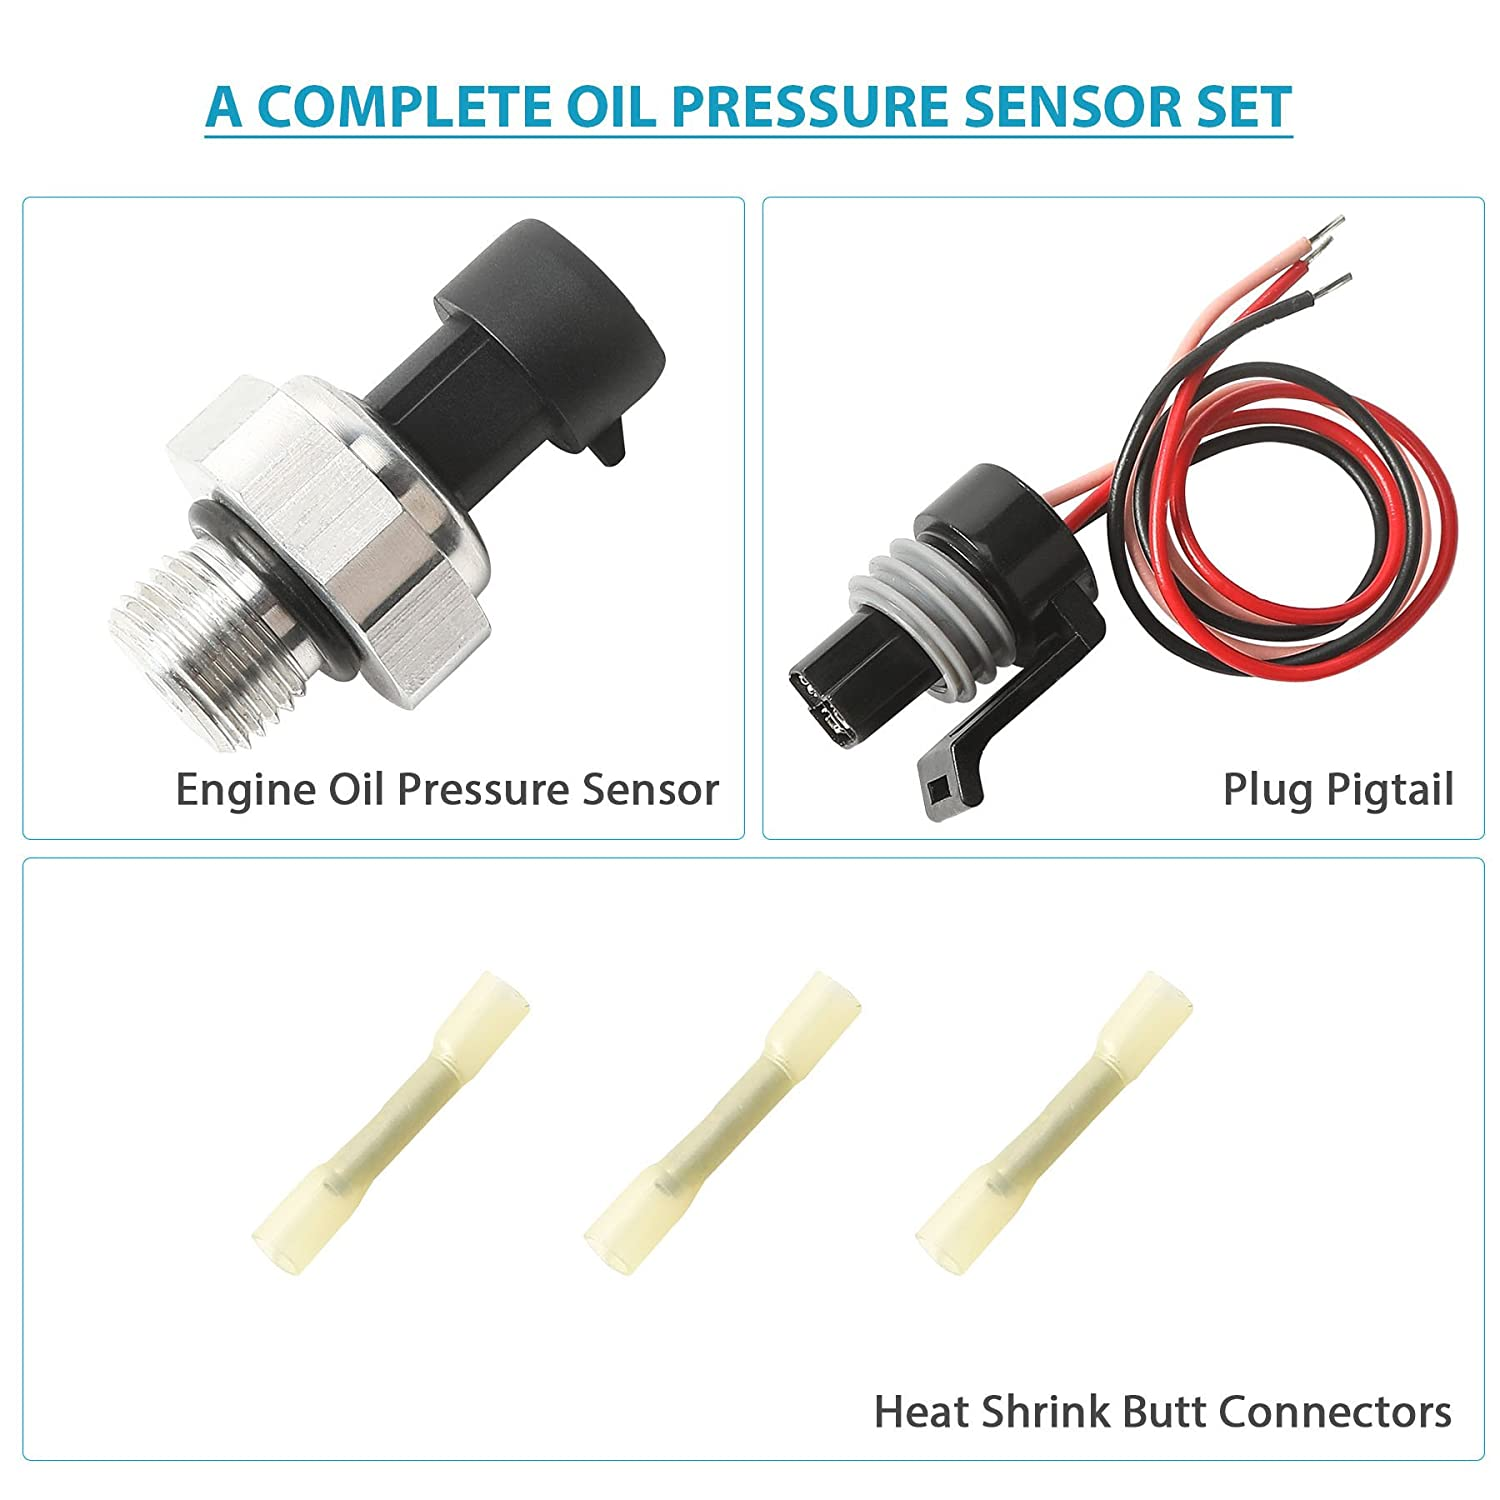 Orion Mootr Tech 12677836 Oil Pressure Sensor Switch with Pigtail Harness,  Compatible with GM Chevy GMC Cadillac Buick, Replaces# D1846A, 12616646,